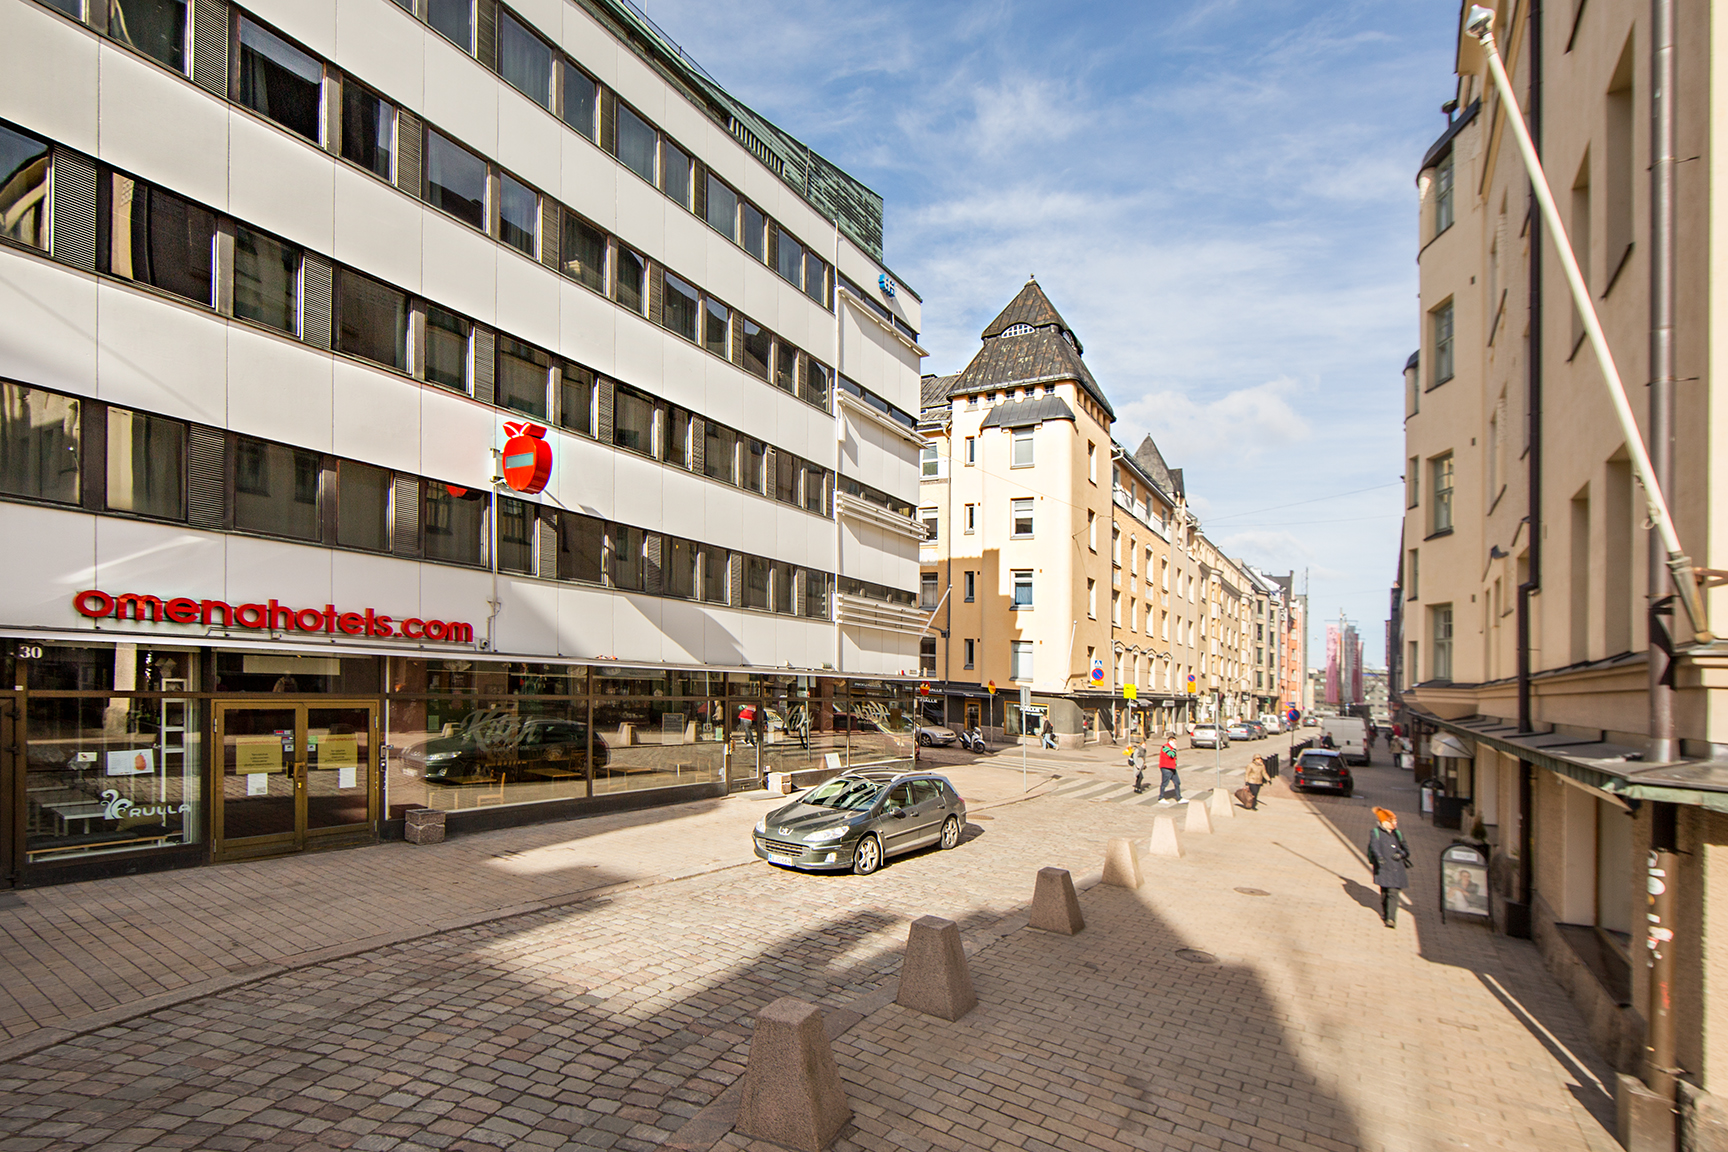 This Chain Of Low Cost Hotels Offers Budget Accommodation Throughout Finland Their Two In Helsinki Are Centrally Located Within Walking Distance